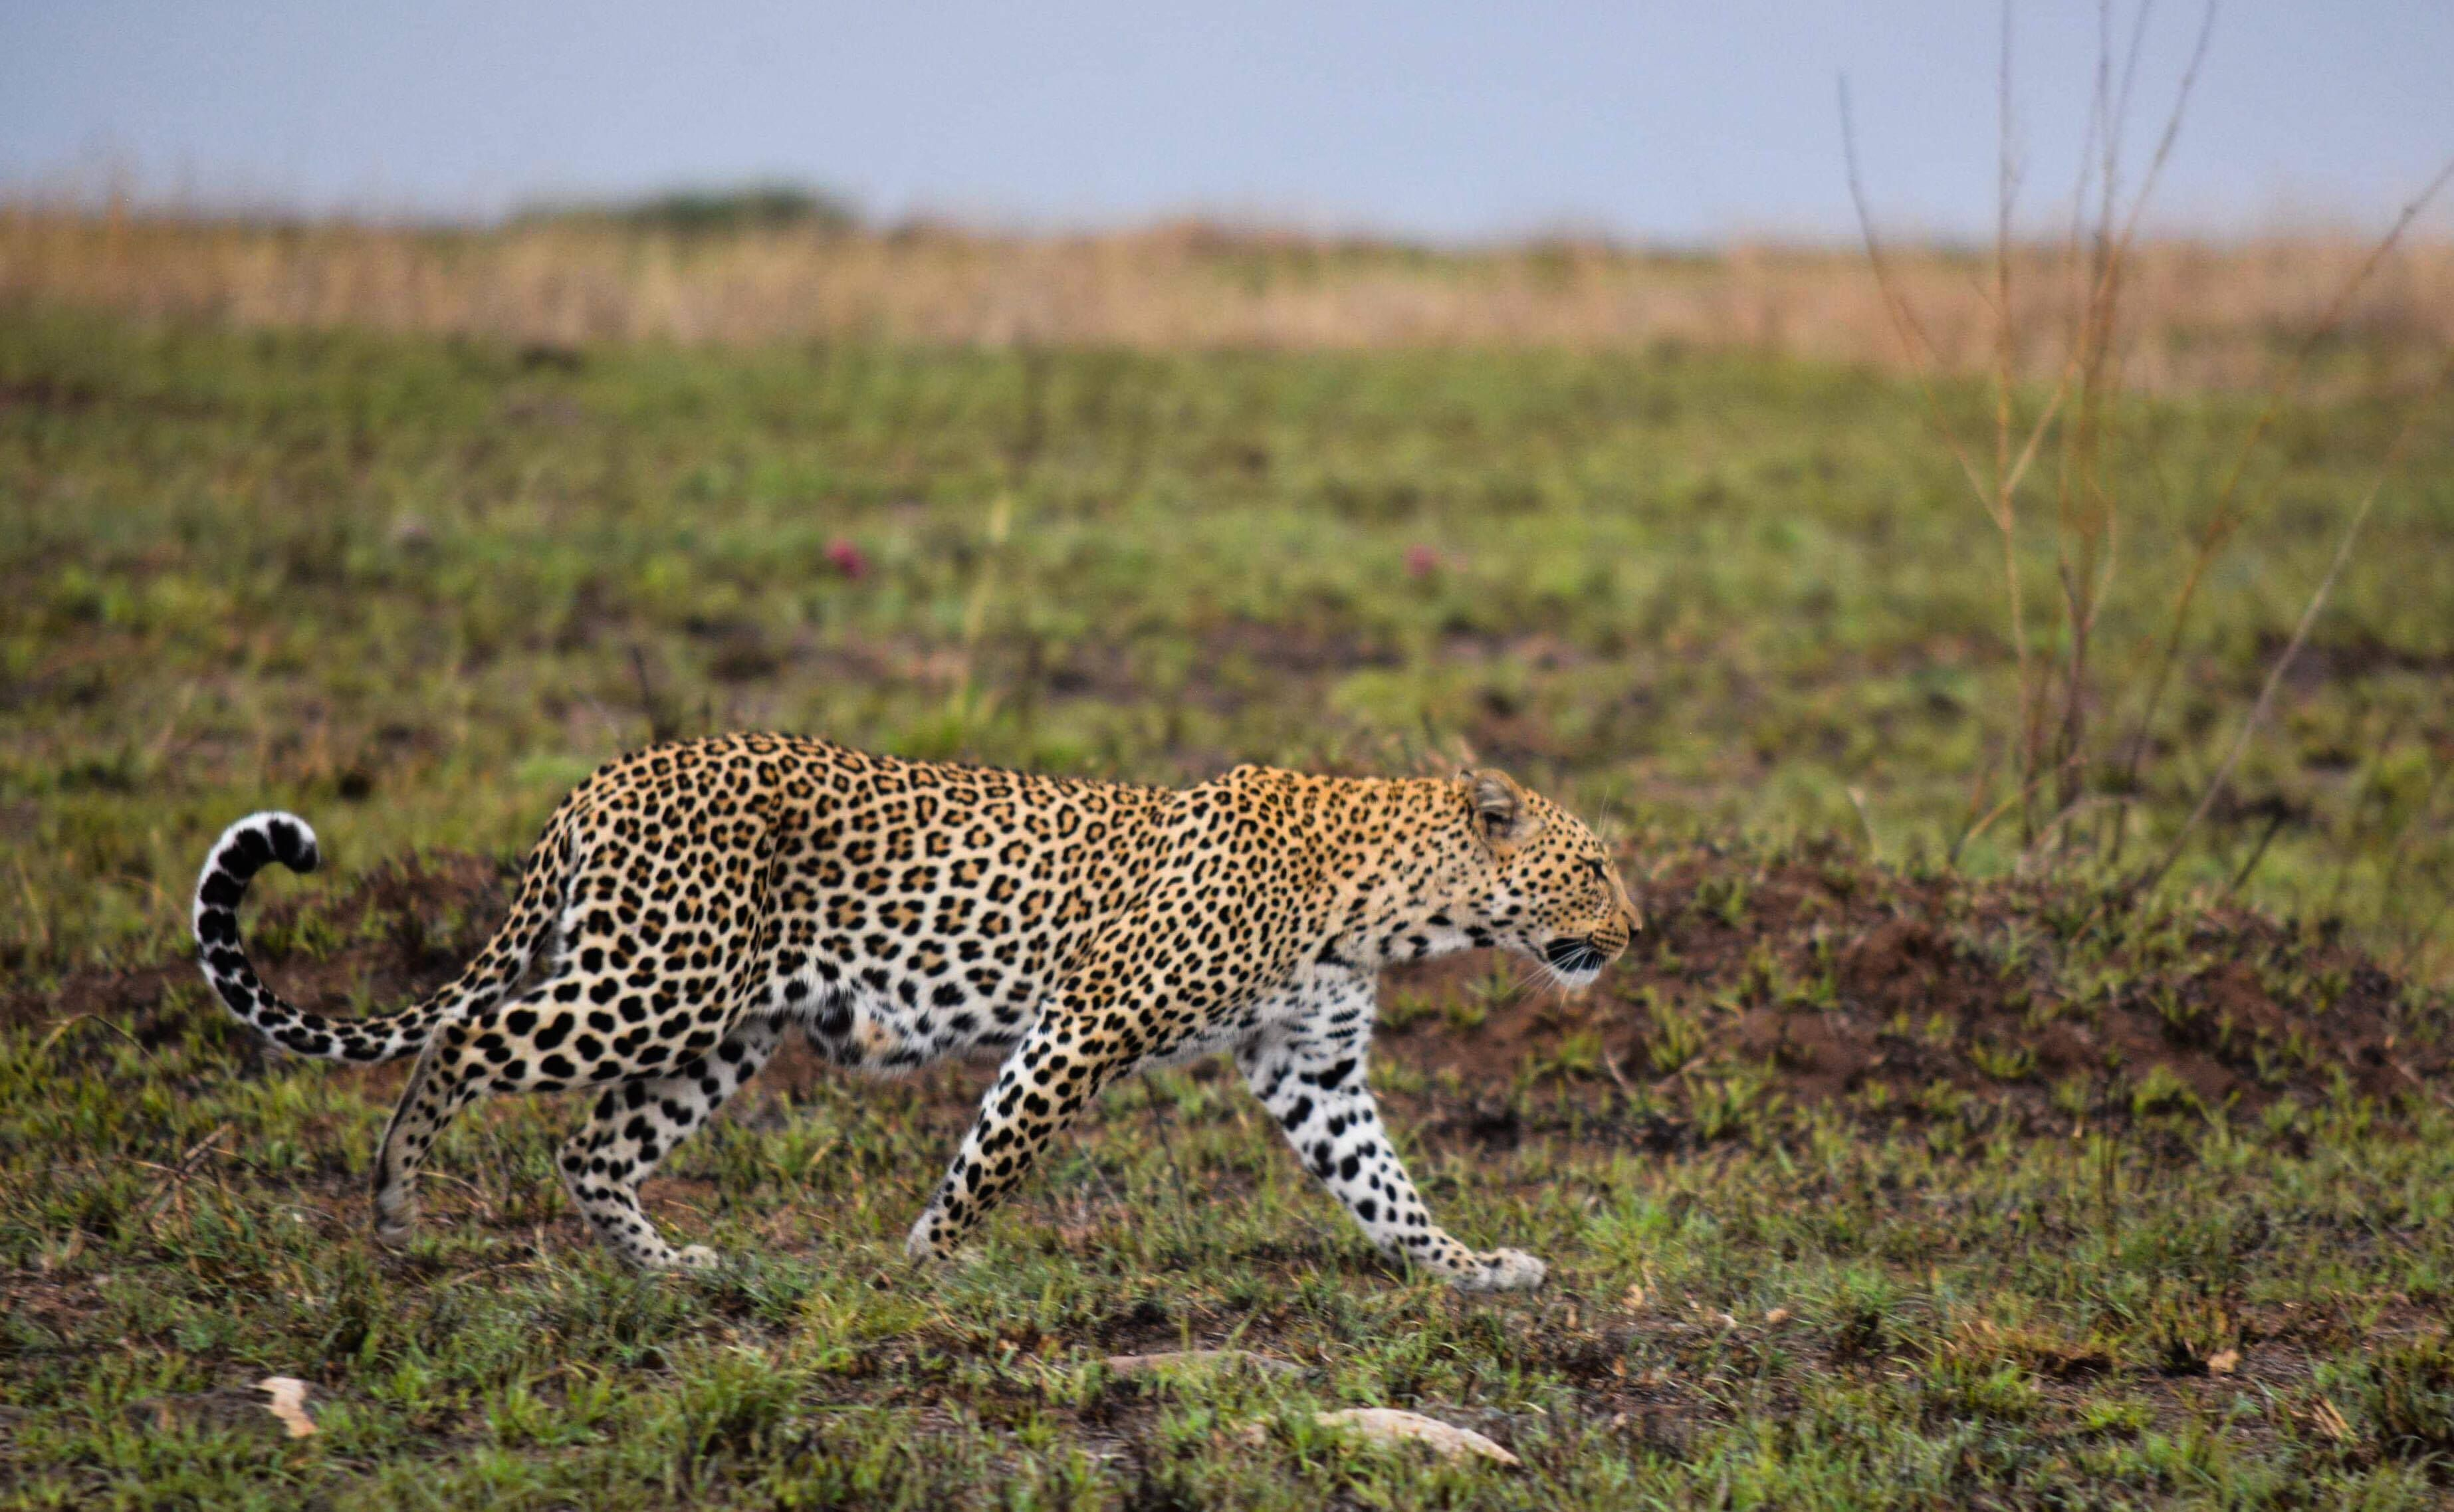 Leopards Normally Hunt At Night And Dusk Staying In